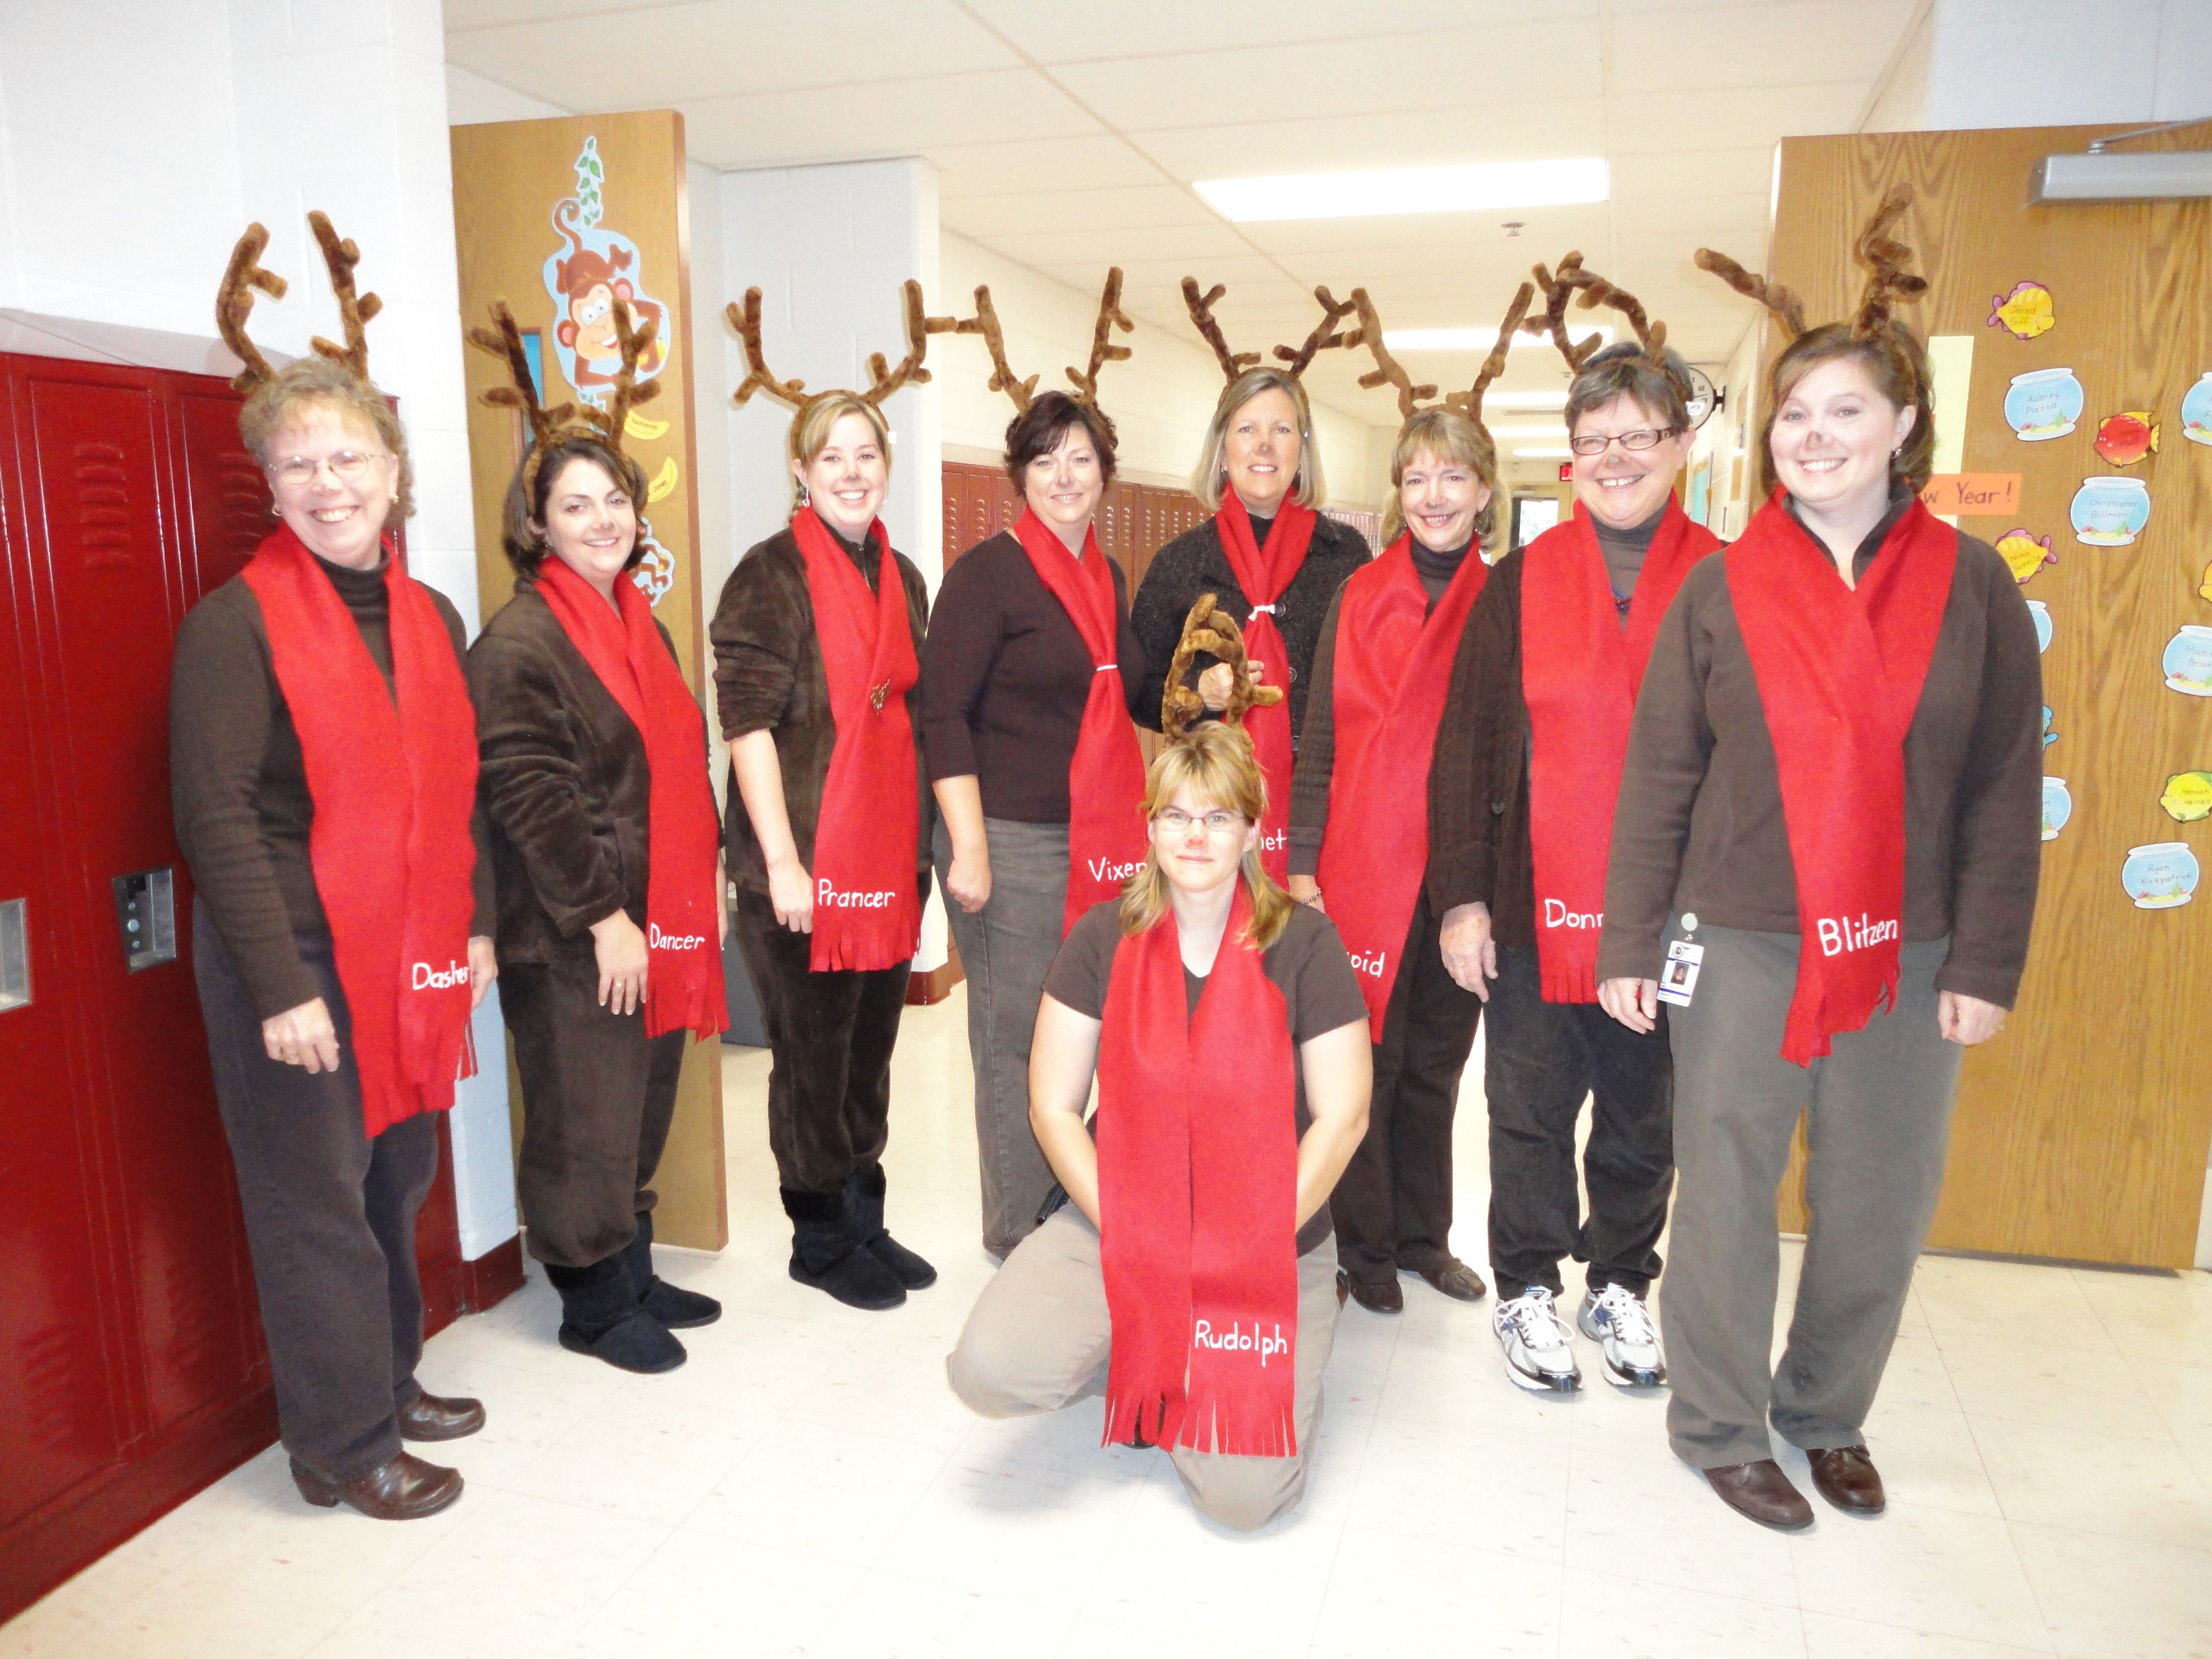 Christmas dress ideas for office party - Easy Reindeer Costume